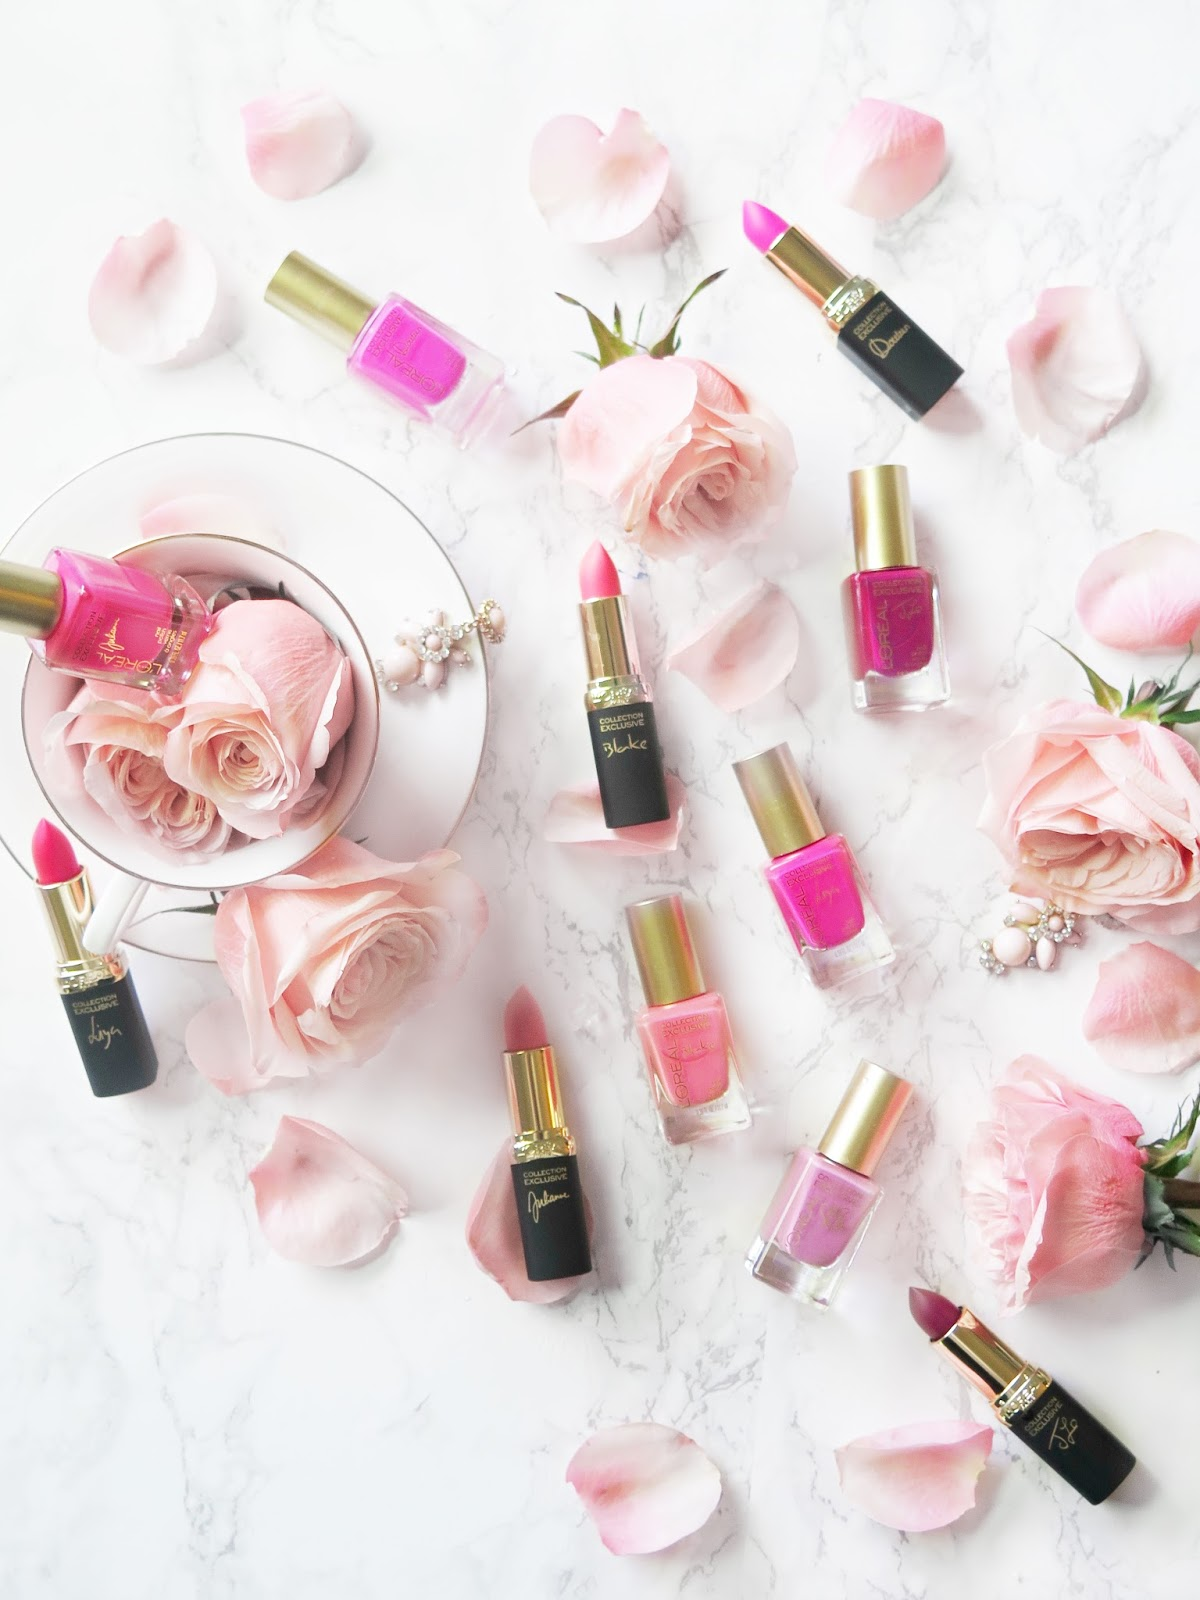 La Vie En Rose | L'oreal's Signature Collection Goes Pink With A Limited Edition Release | Review & Swatches | labellesirene.ca